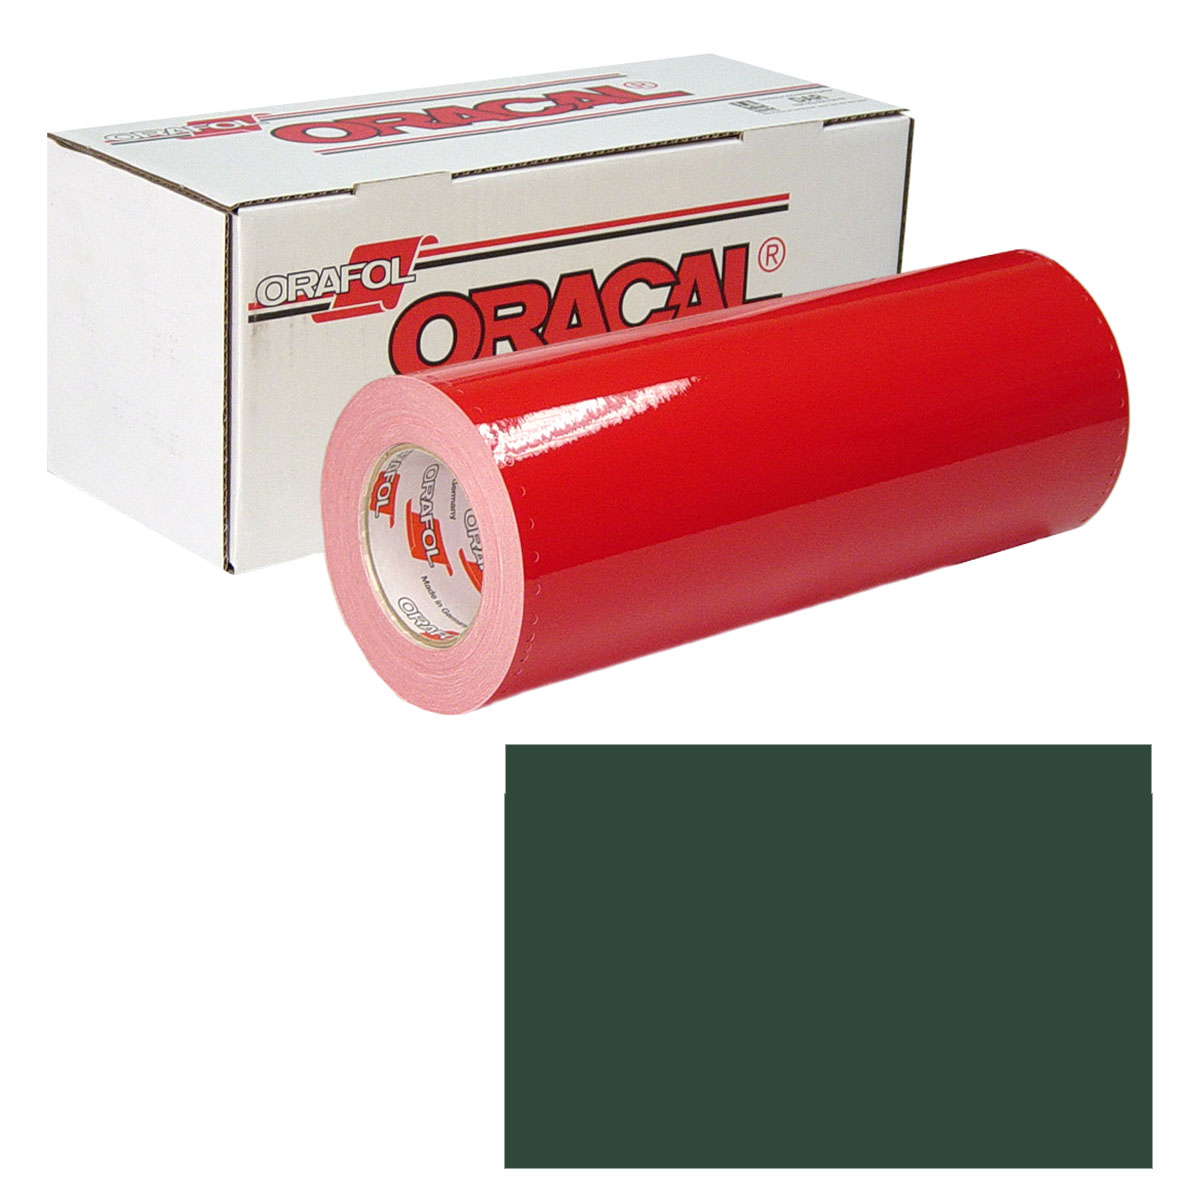 ORACAL 951M Unp 48In X 50Yd 677 Fir Green